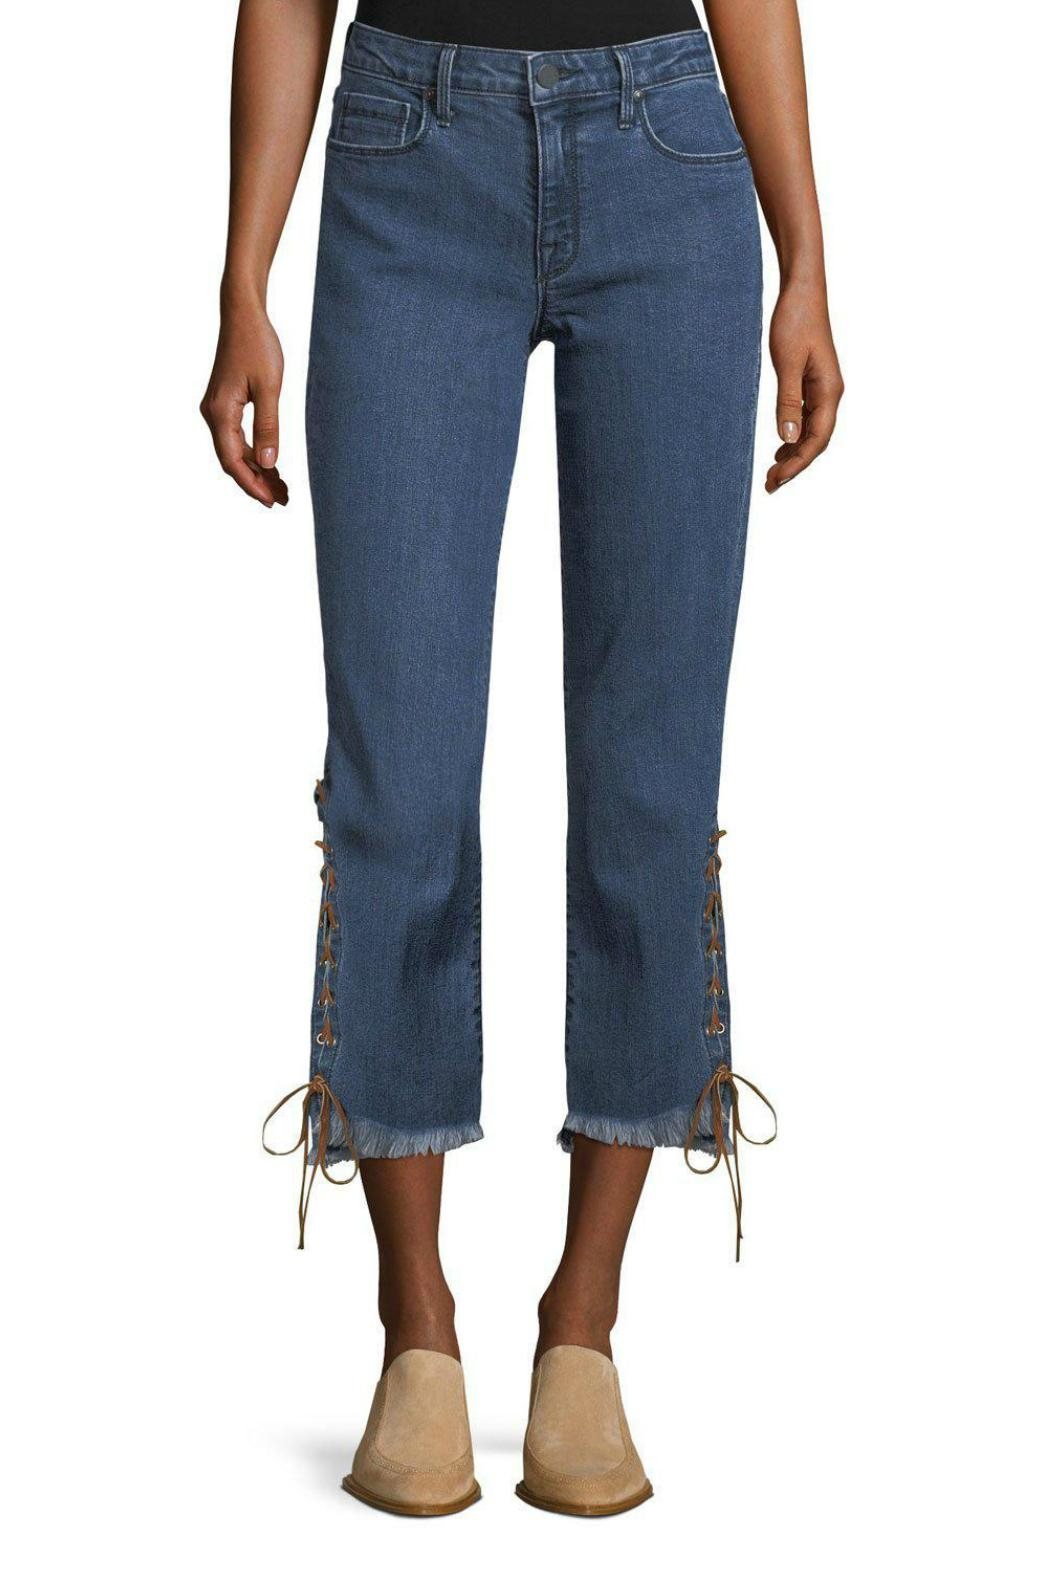 Parker Smith Lace Up Jean - Main Image